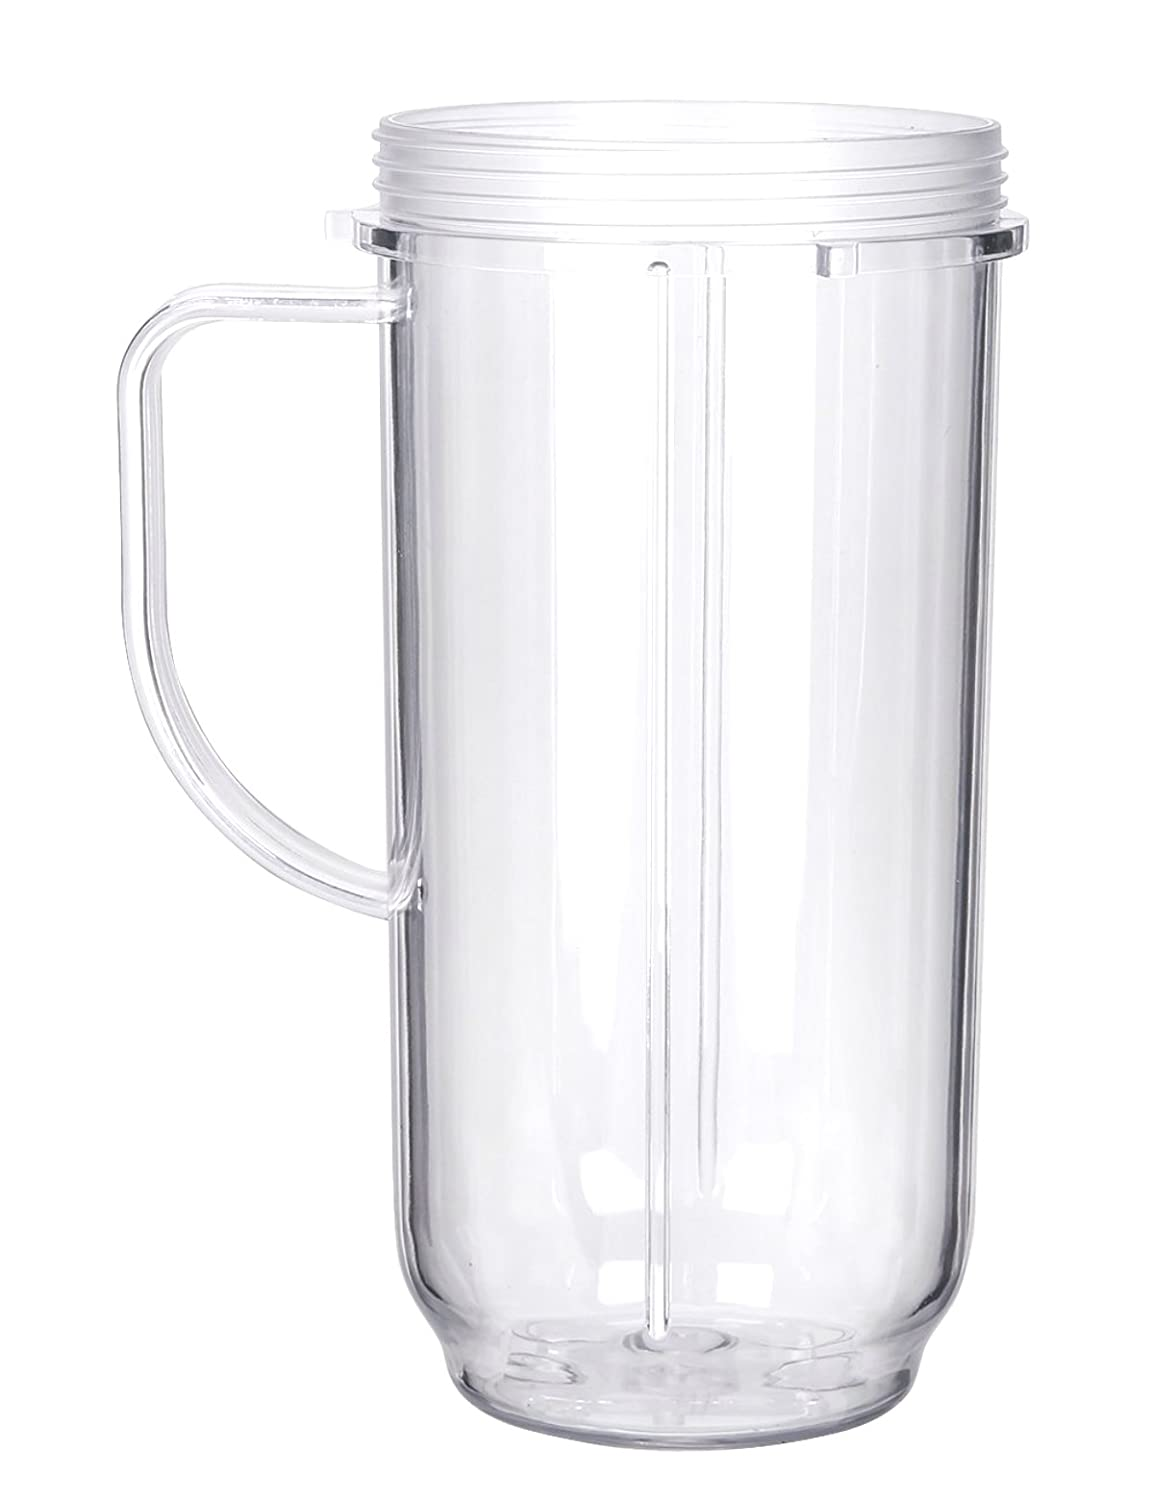 Sduck Handled Smoothie Mug Replacement for Magic Bullet MB 1001 MB 1001B MBR-1101 MBR-1701 Blender (Not for Nutribullet or any other series)